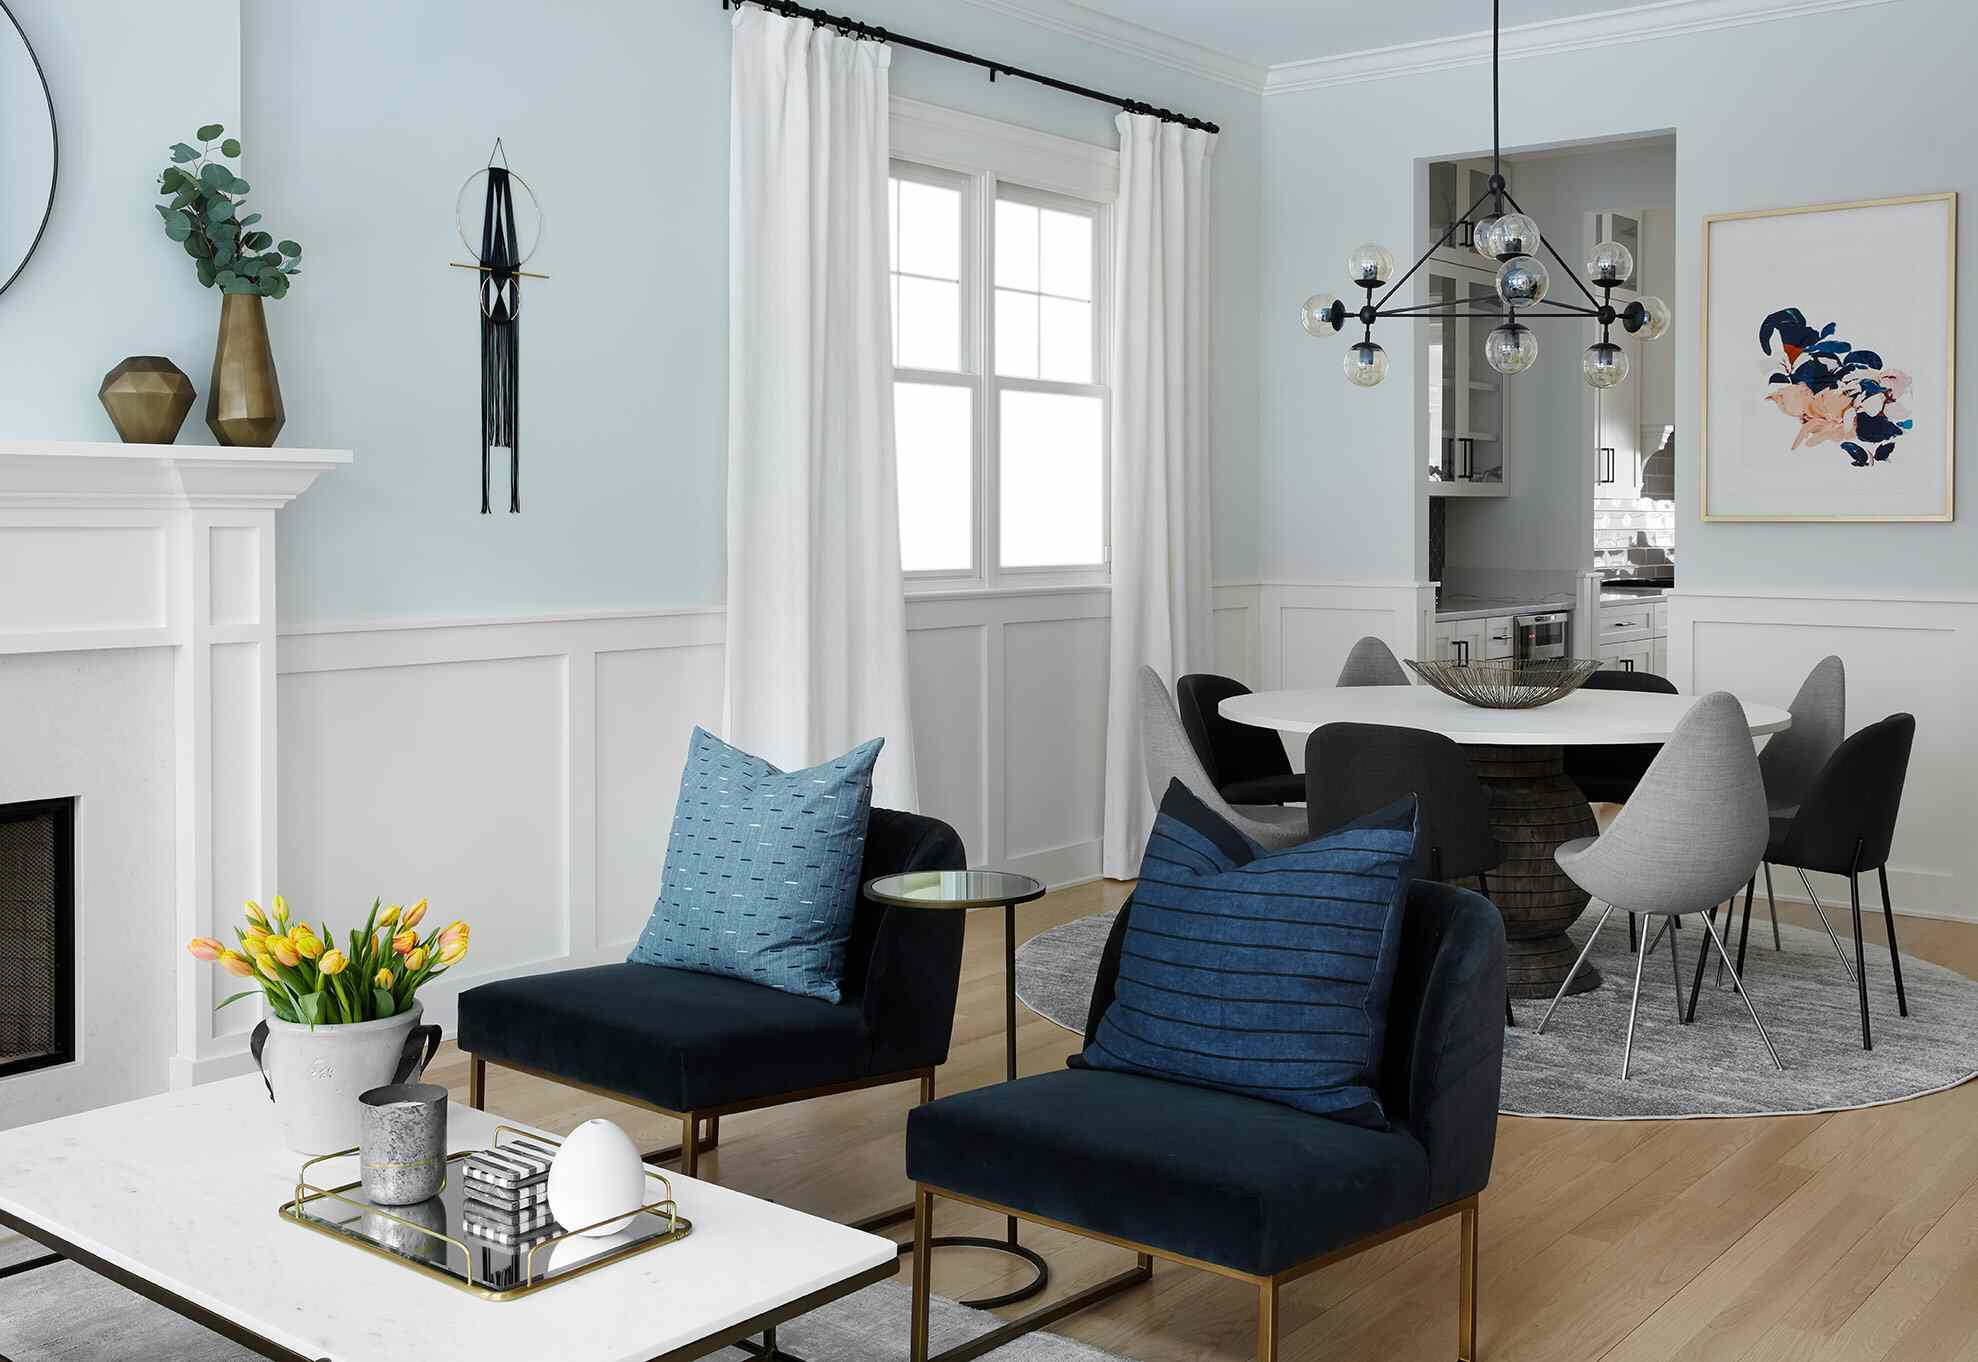 13 Inspiring Spaces That Prove Crown Molding Works With Any Style